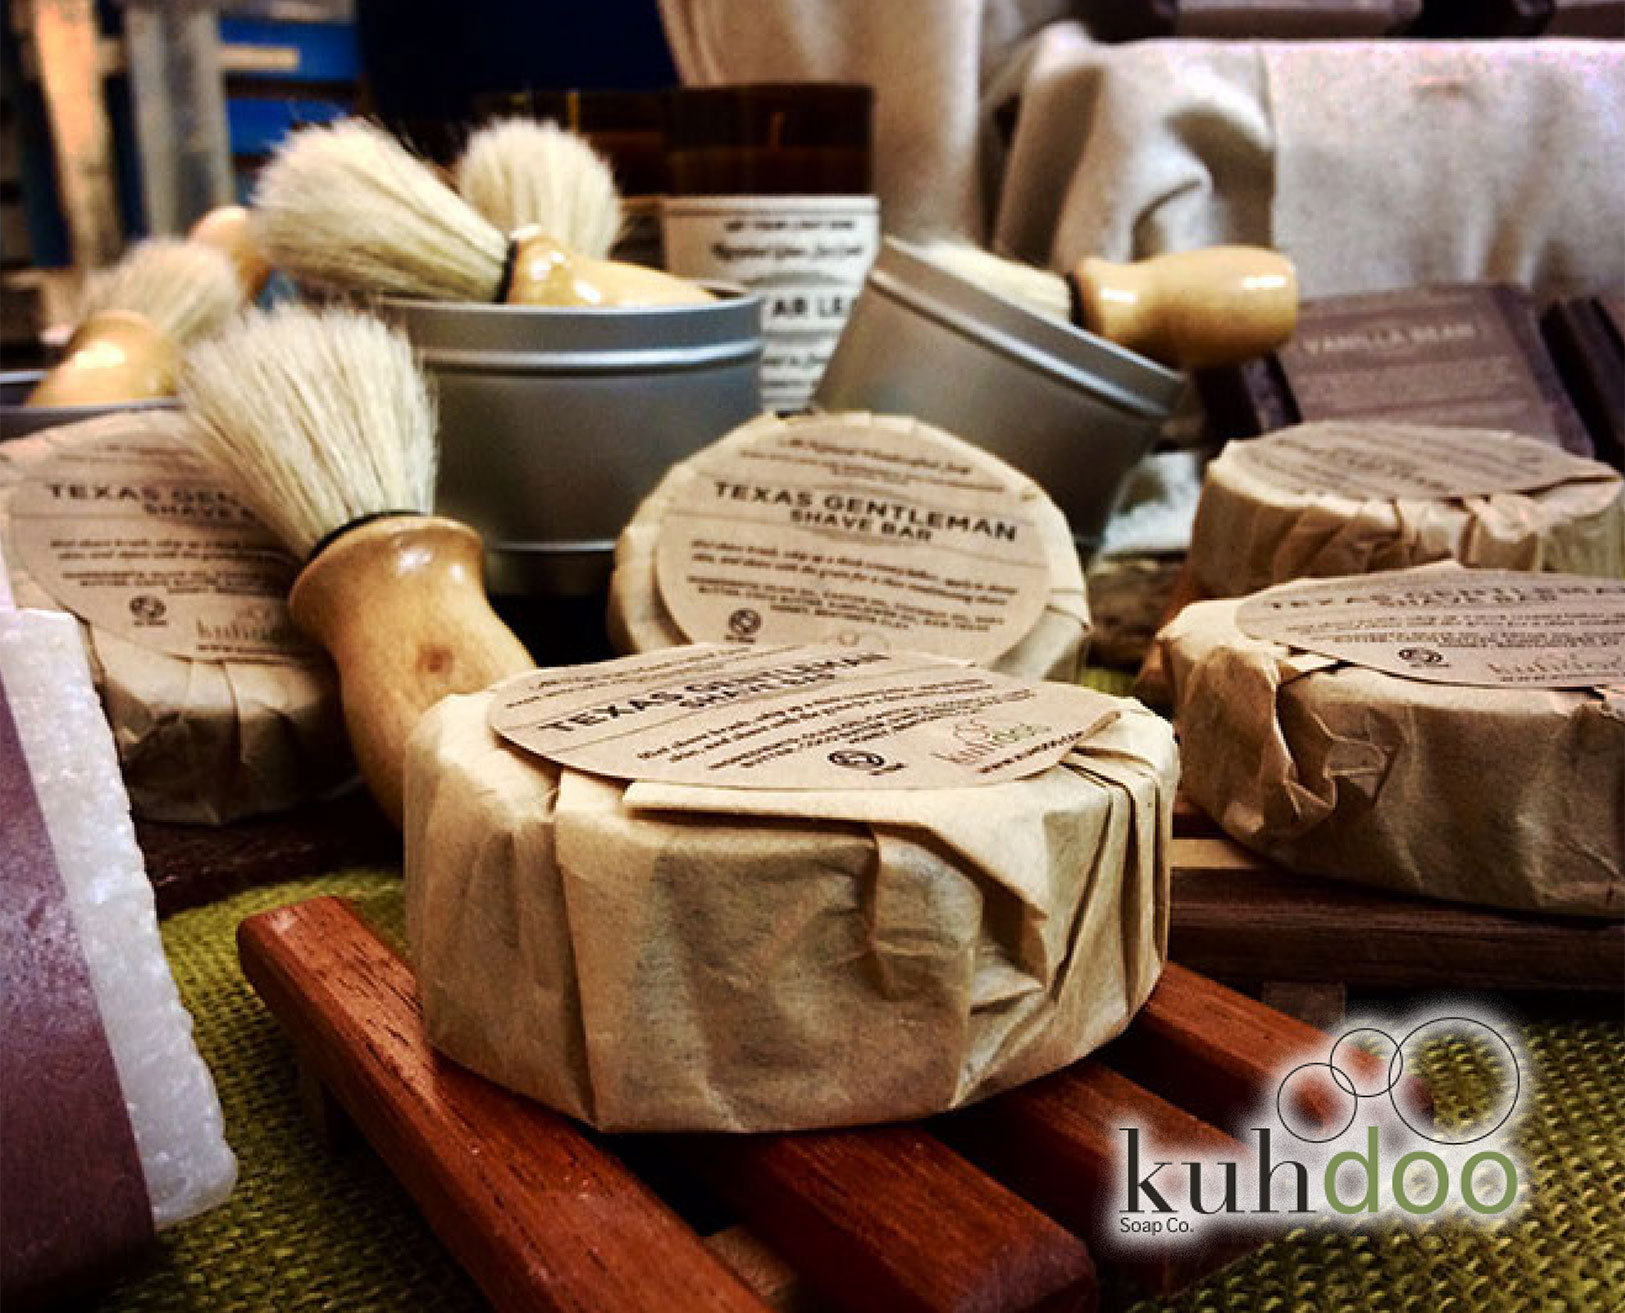 "Kuhdoo Soap Co.""MAKING SOAP IS A FUN FAMILY AFFAIR"" Hi! We're the Mangums. Jared, Kaysha, and Isaac. Making soap is a fun family affair for us, just on a whole different scale these days."